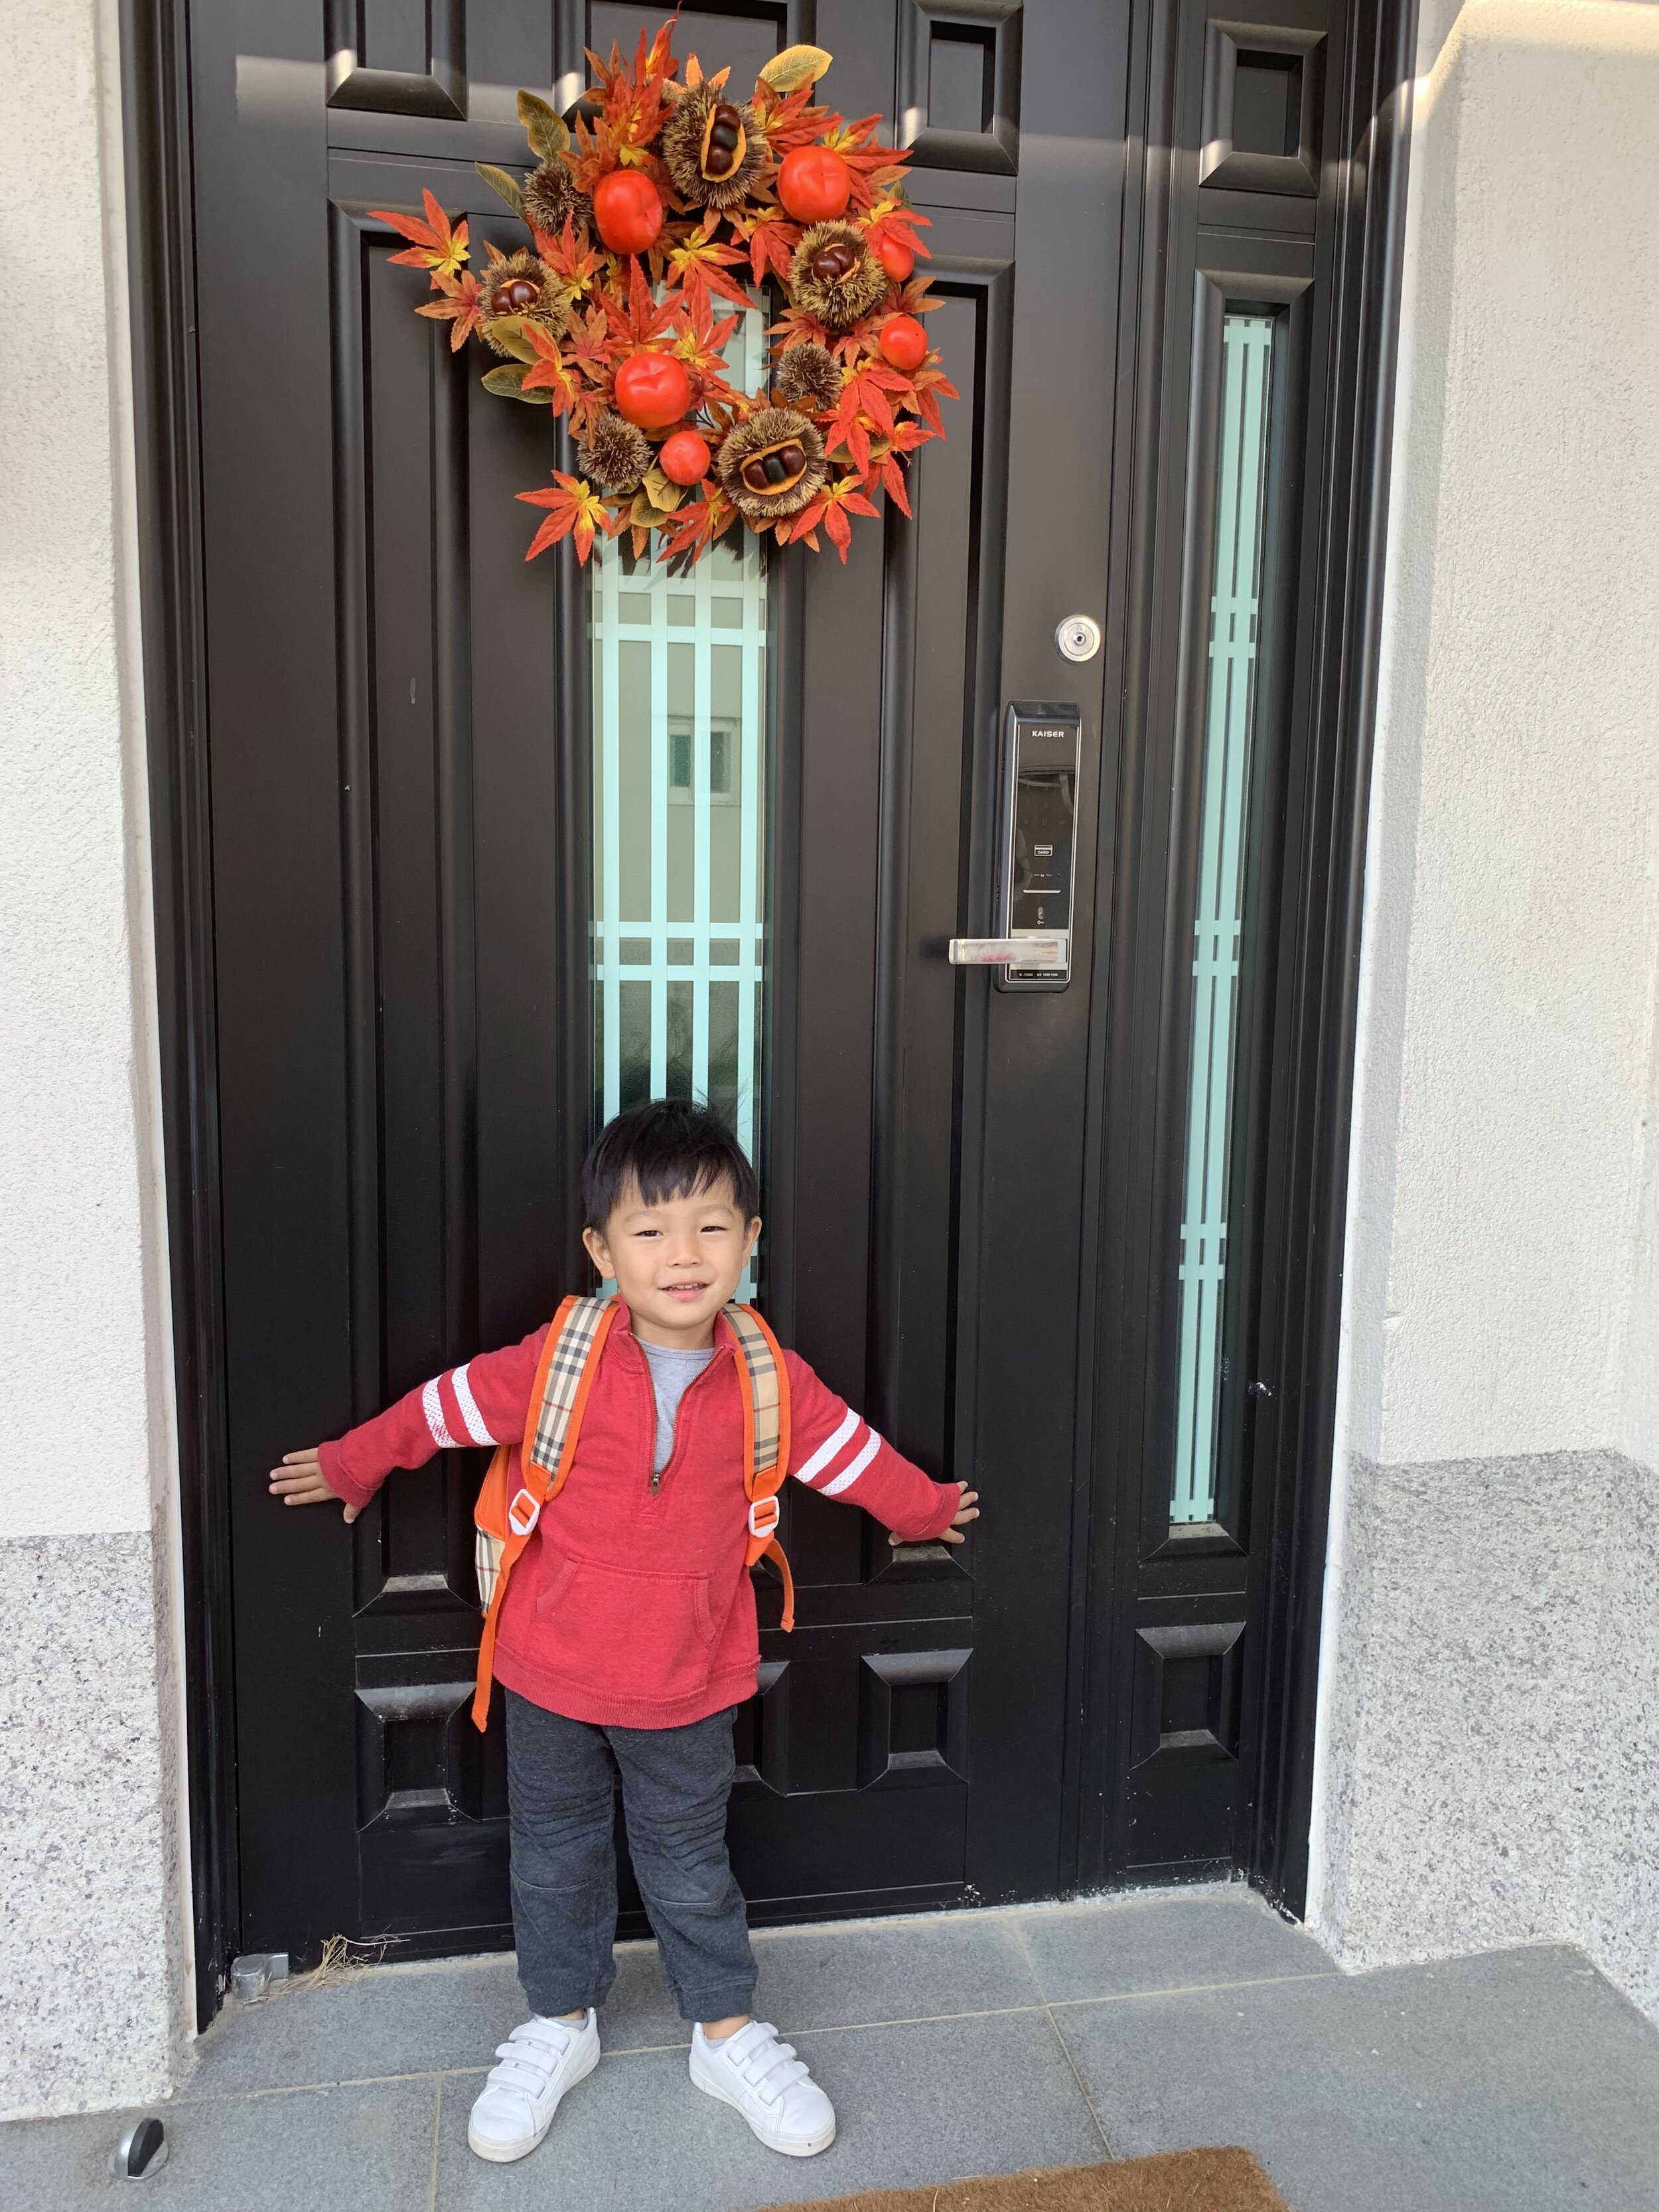 J in his newly thrifted outfit and our new fall wreath!